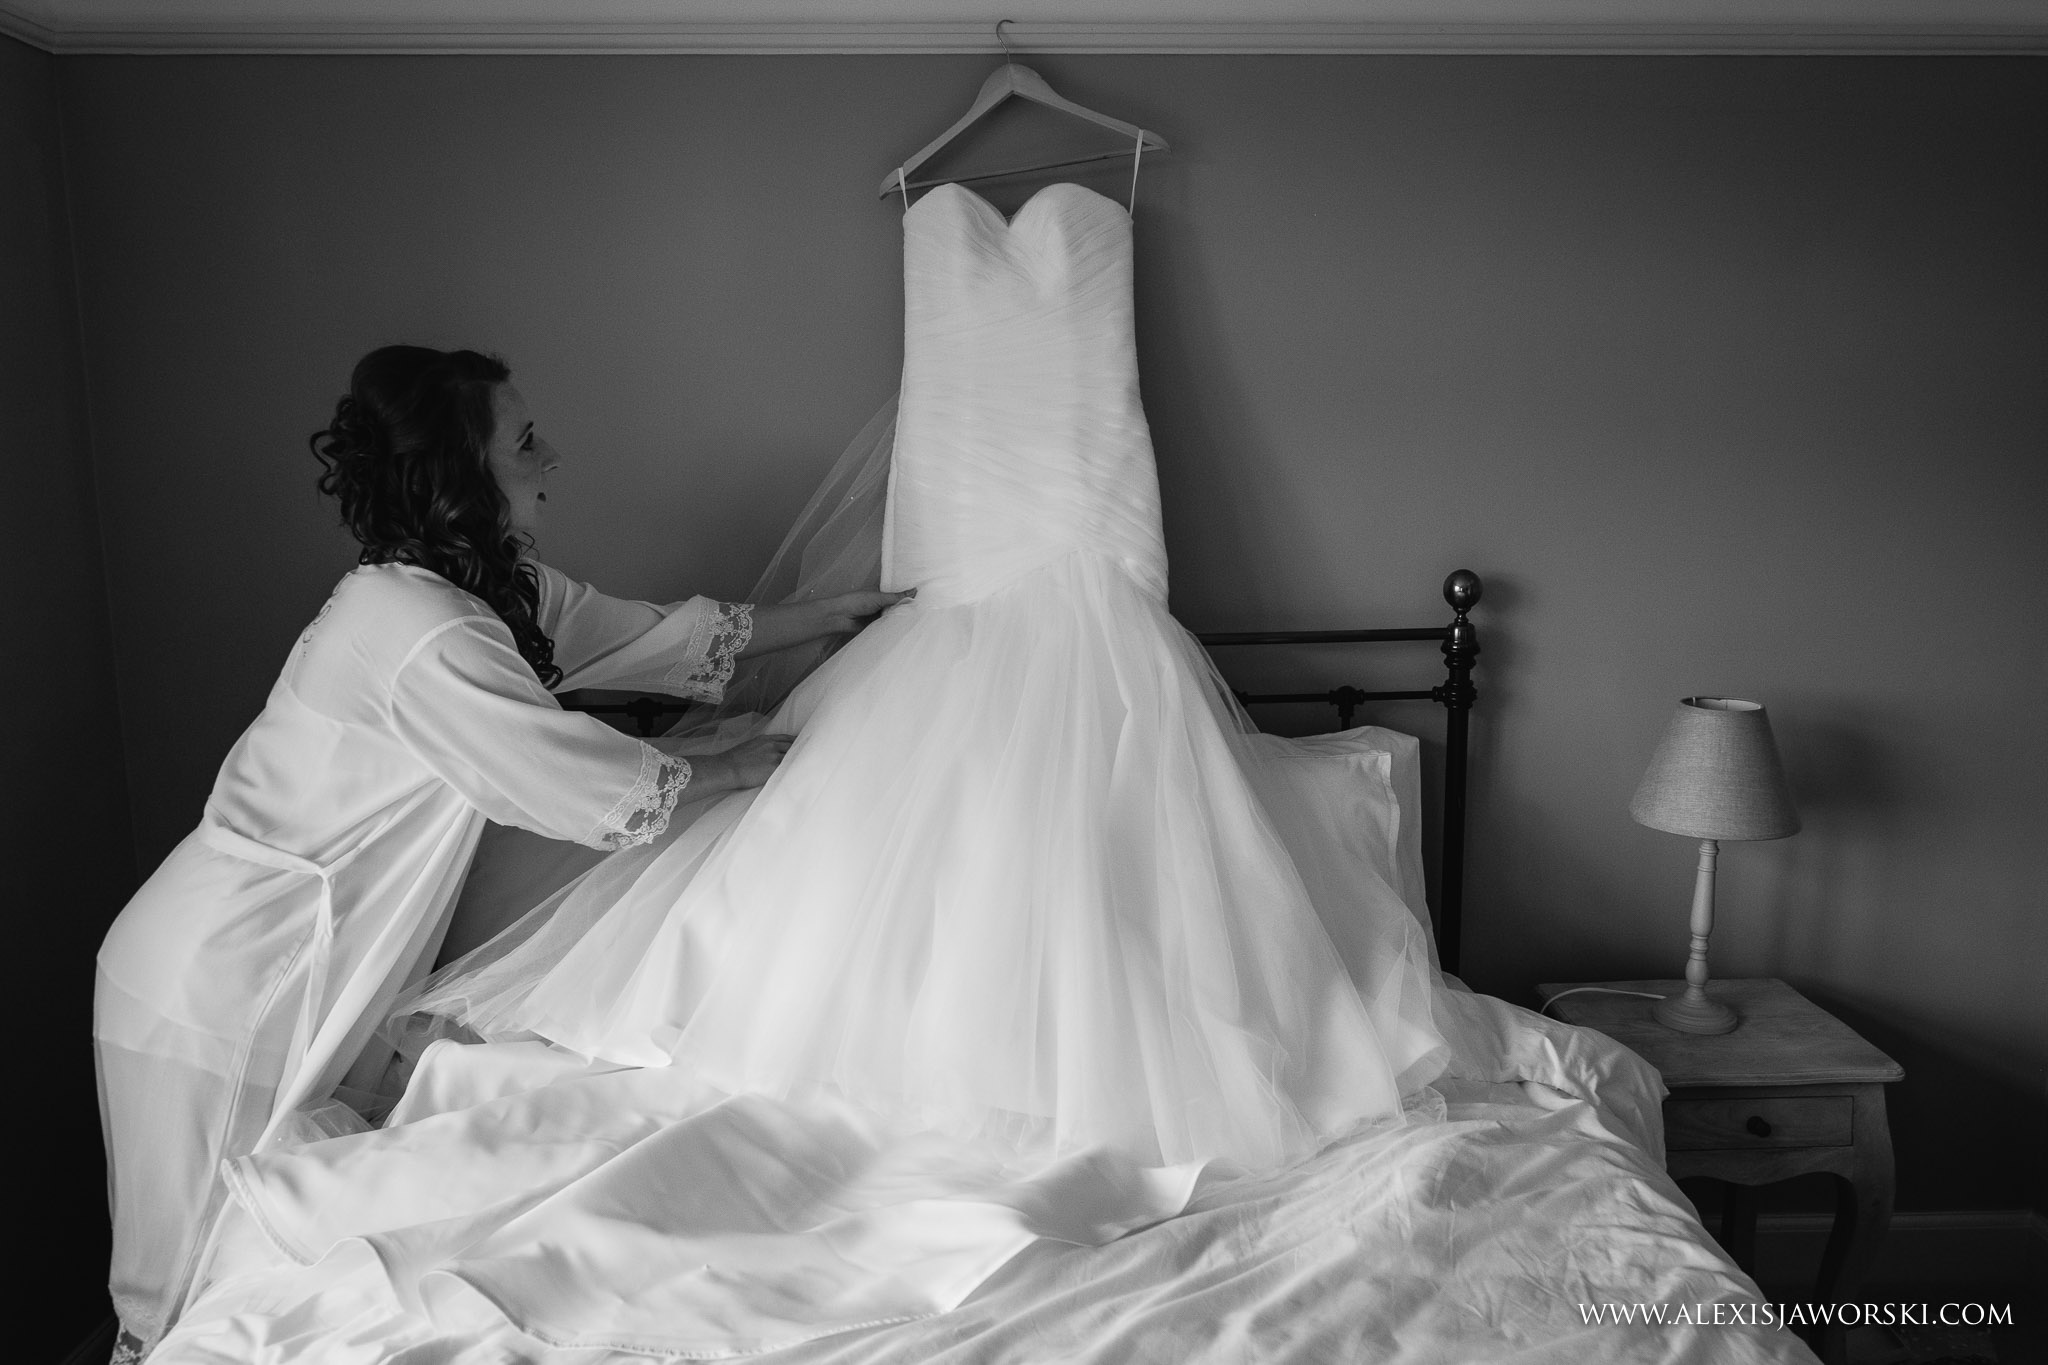 Wedding dress on bed